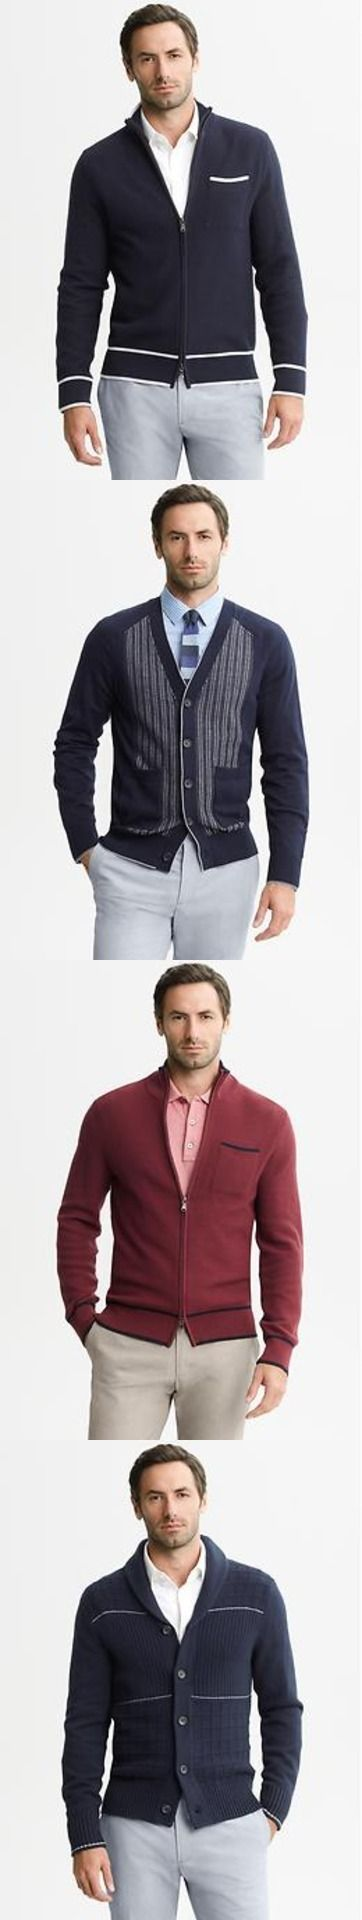 New cardigan sweaters for men from the Mad Men collection @Banana Republic